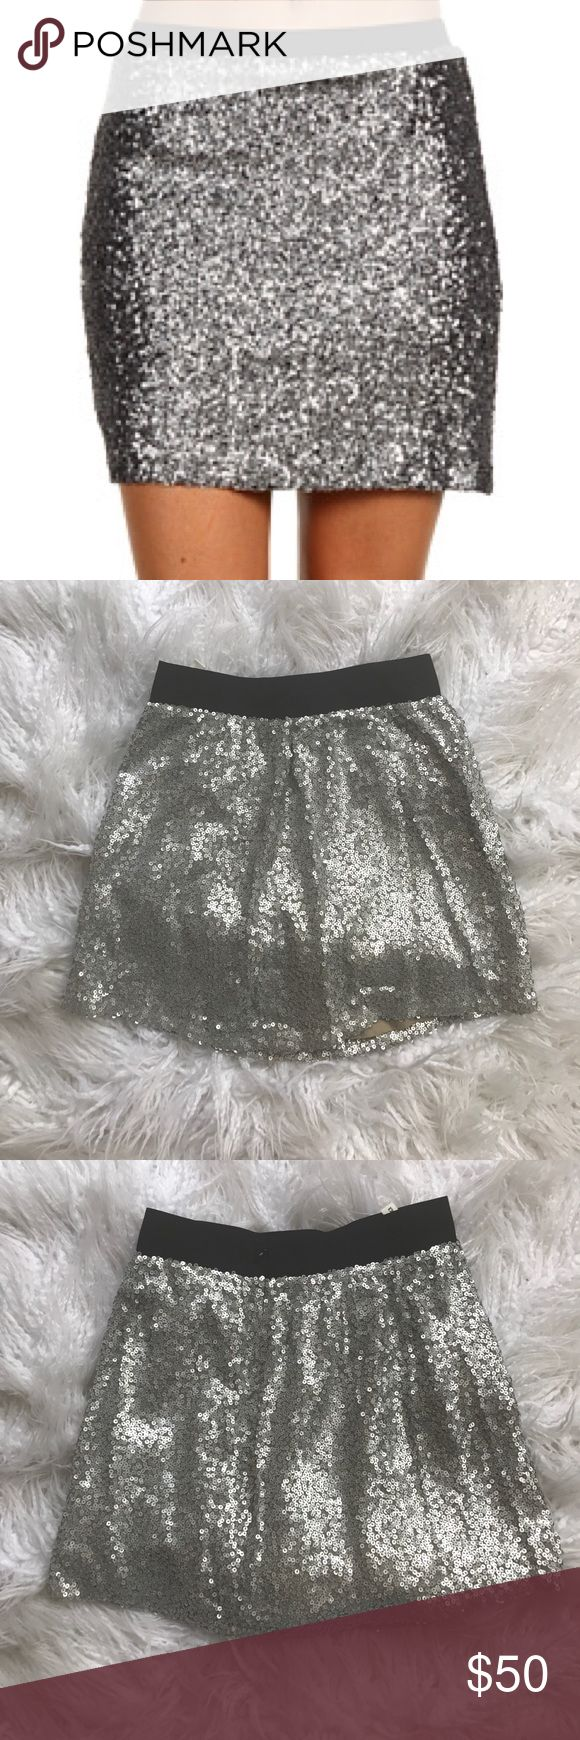 Robbi & Nikki Sequin Mini Skirt Beautiful Robbi & Nikki sequin mini skirt in like new condition! The sequins on this skirt are MATTE silver so it gives off a chic high end look. FEEL FREE TO MAKE ME AN OFFER! Robbi & Nikki Skirts Mini